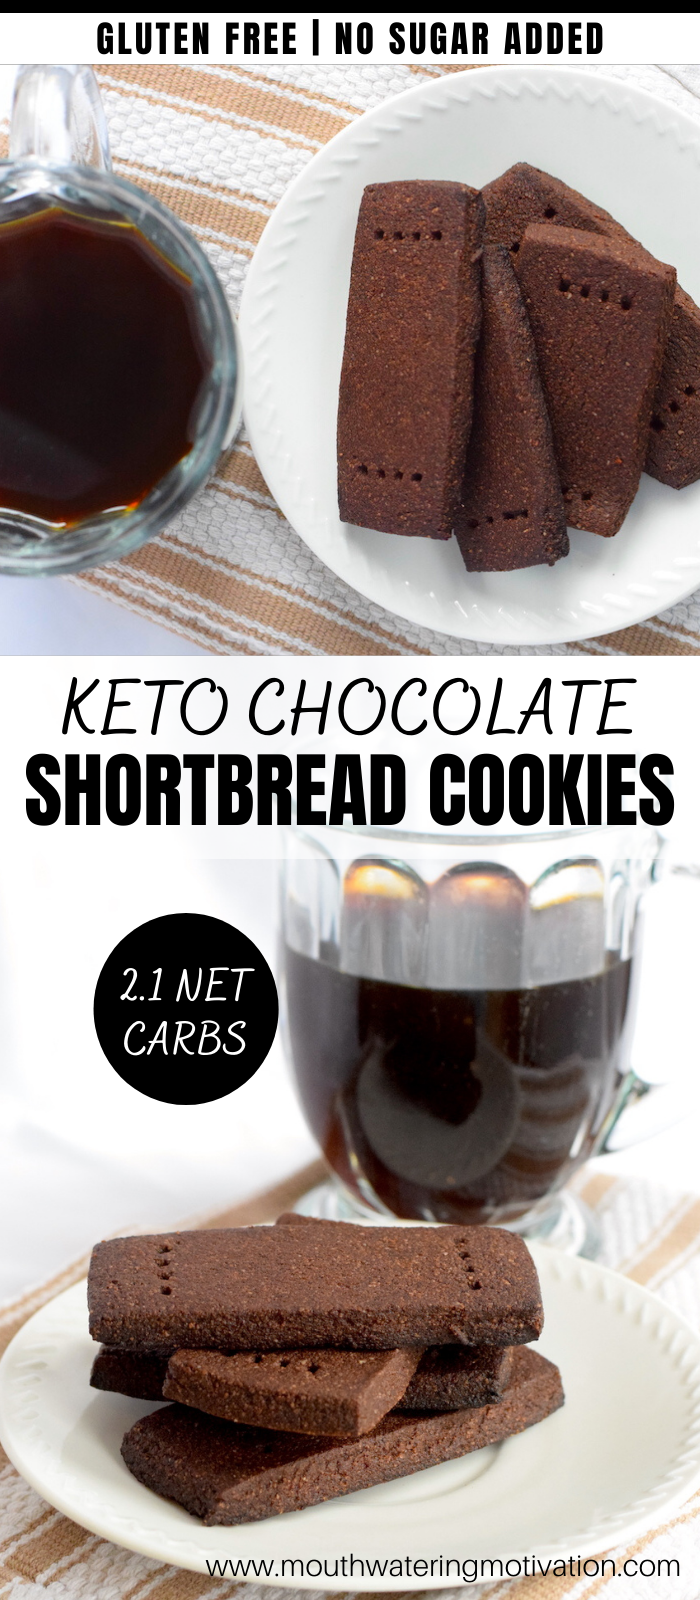 Keto Chocolate Shortbread Cookies